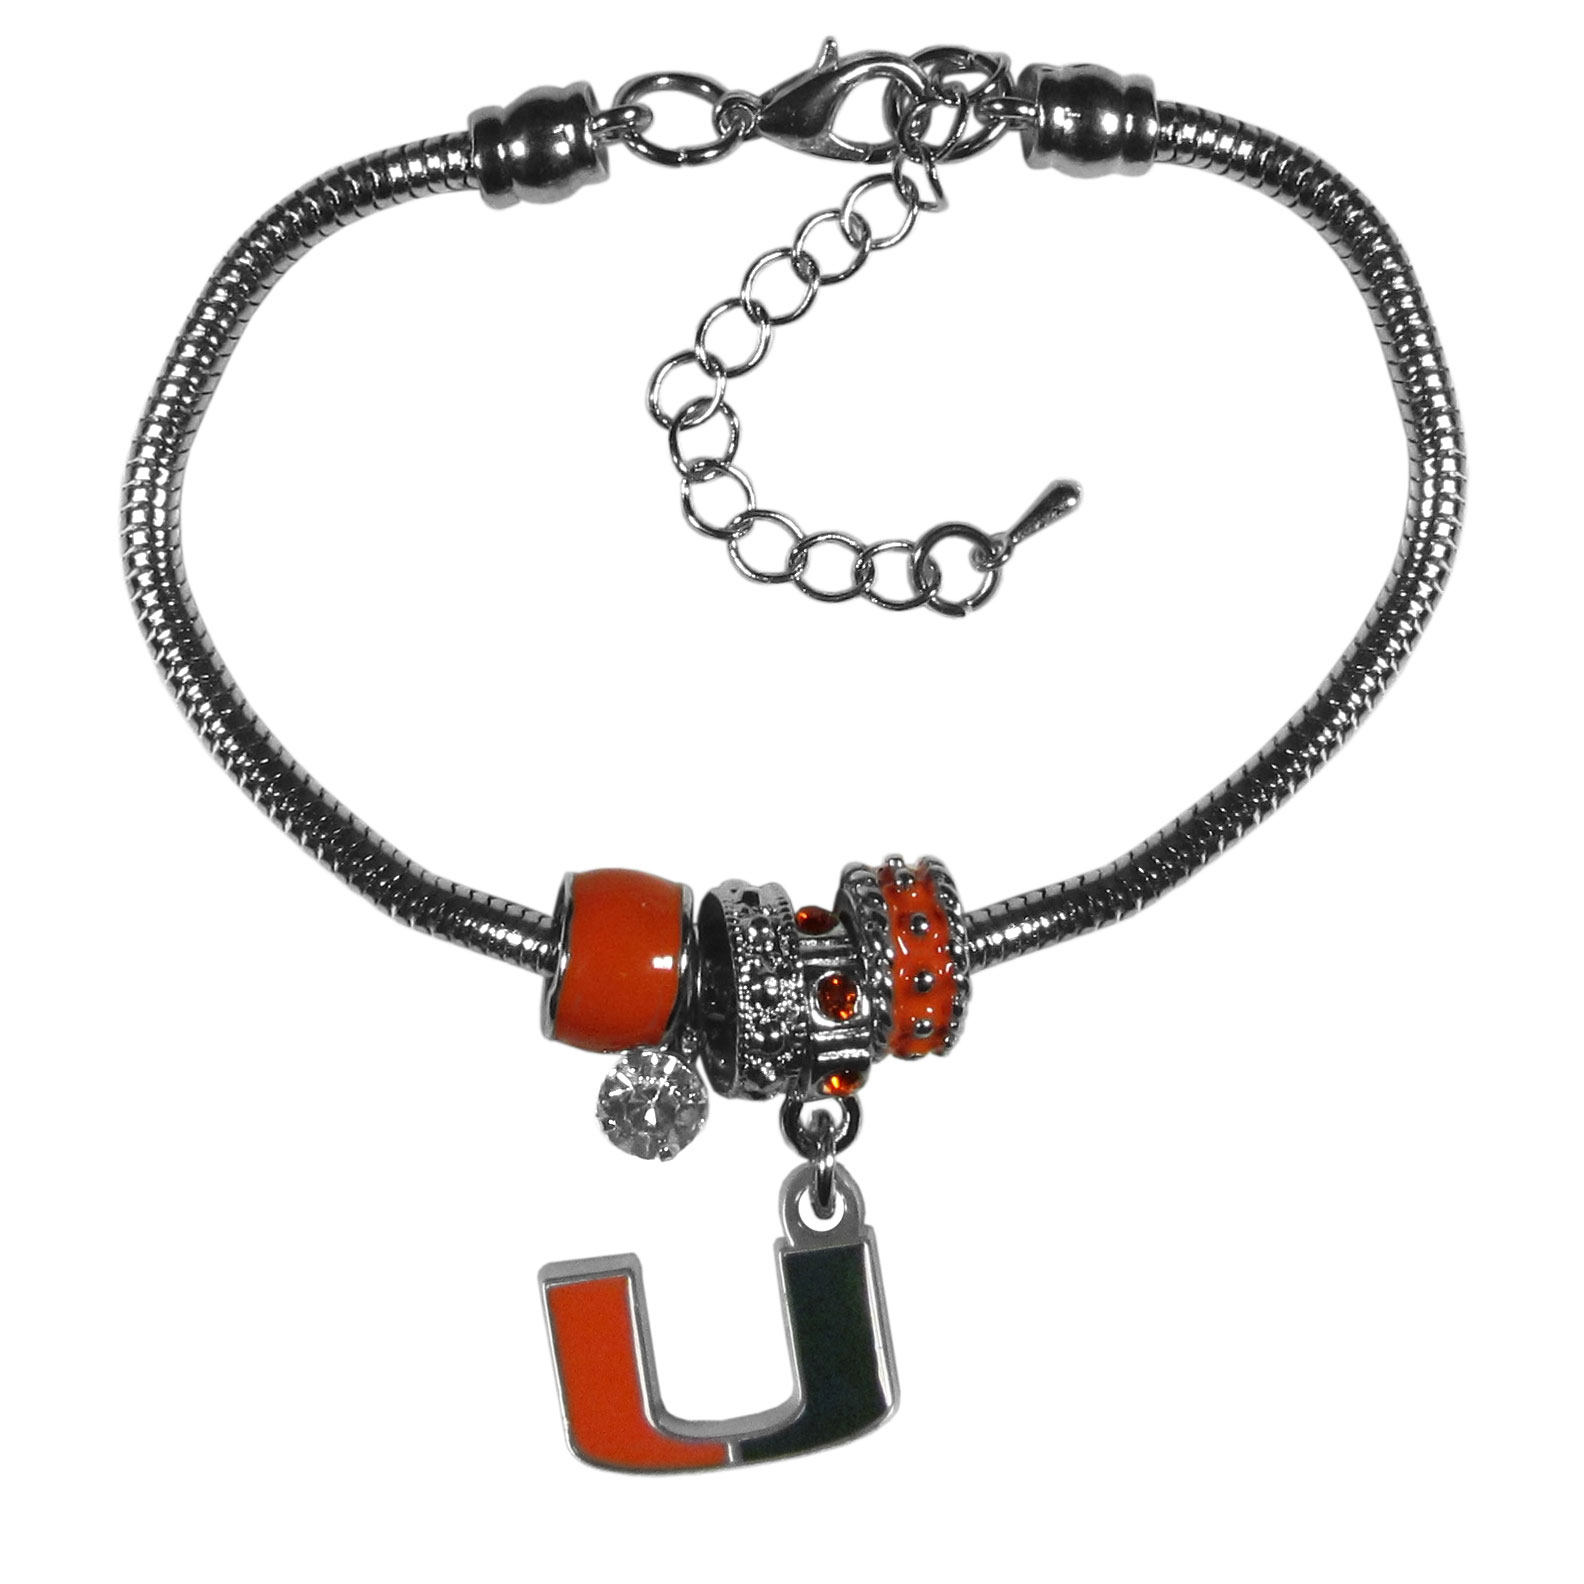 Miami Hurricanes Euro Bead Bracelet - We have combined the wildly popular Euro style beads with your favorite team to create our  Miami Hurricanes bead bracelet. The 7.5 inch snake chain with 2 inch extender features 4 Euro beads with enameled team colors and rhinestone accents with a high polish, nickel free charm and rhinestone charm. Perfect way to show off your team pride.